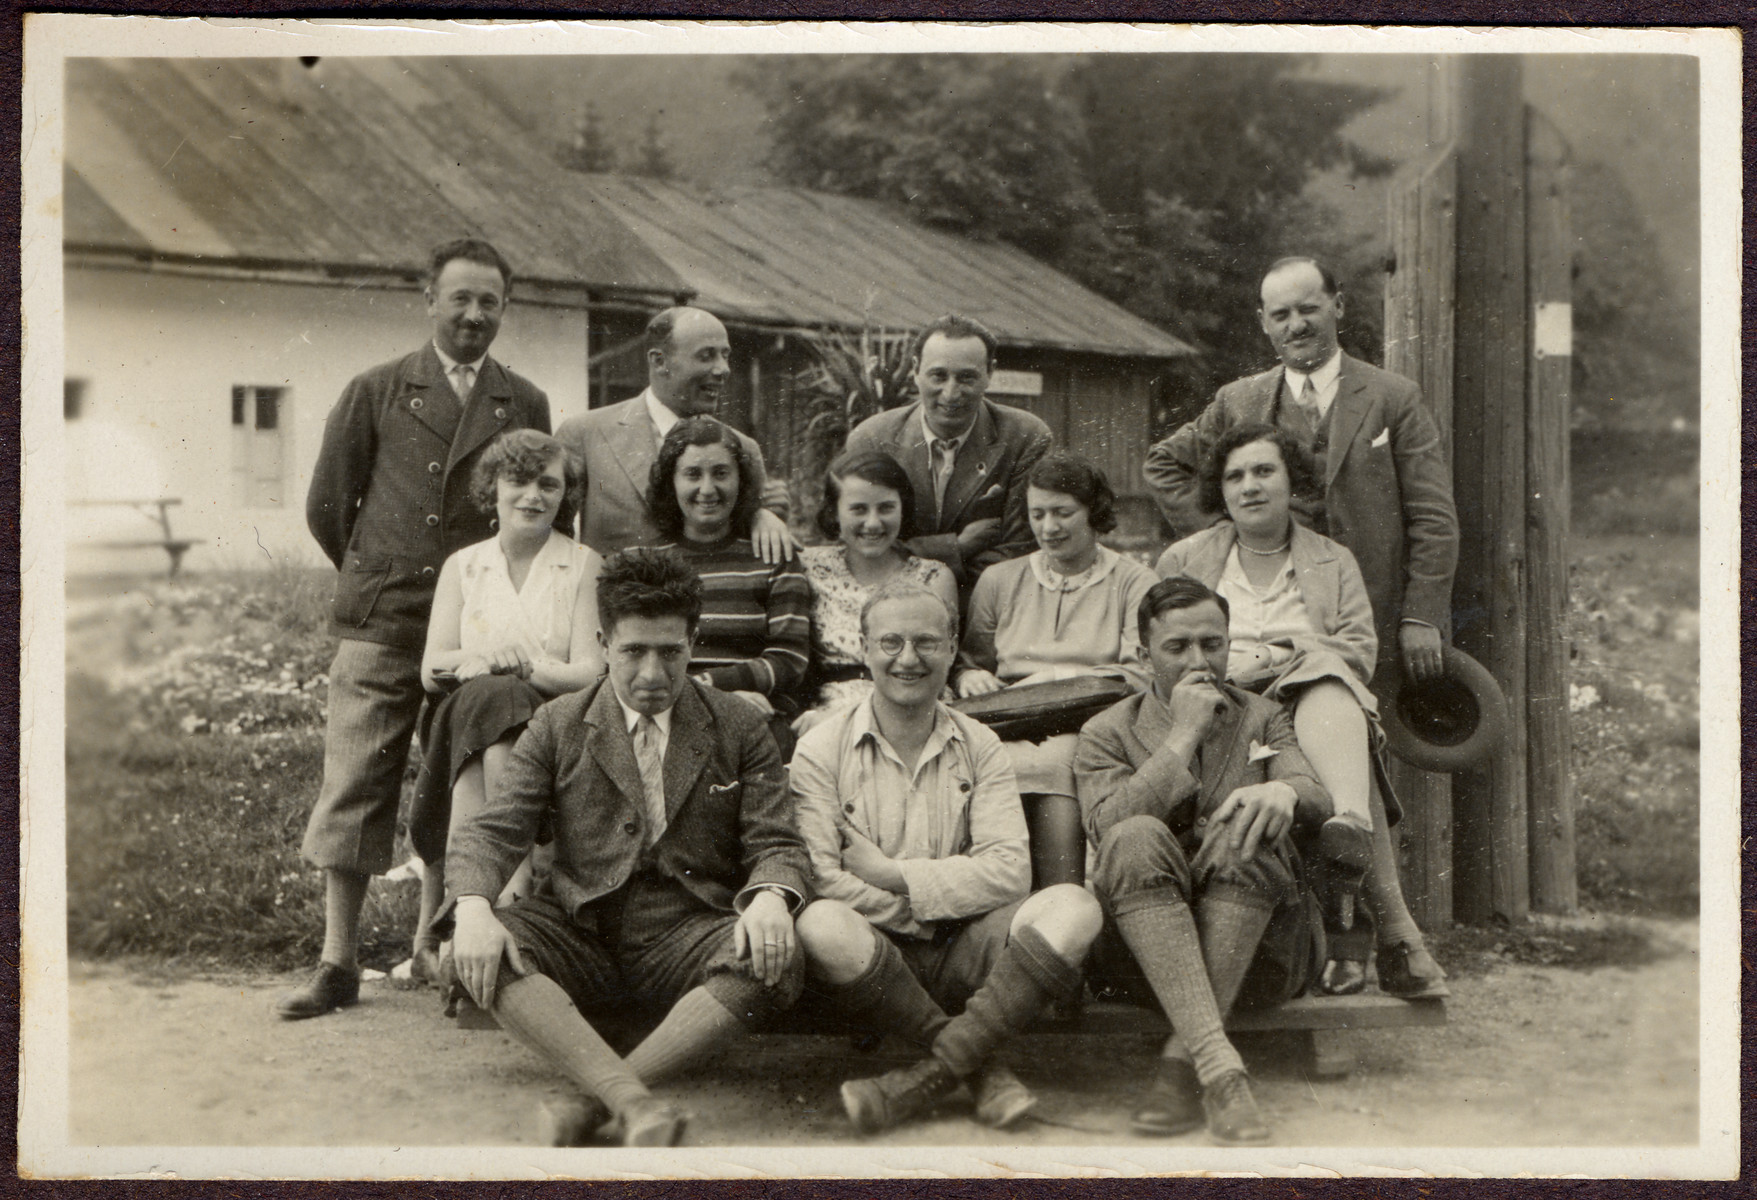 A group of Austrian Jewish friends poses for a group portrait in front of a home in the countryside.  Among those pictured is Greta Stoessler (second row, far left).